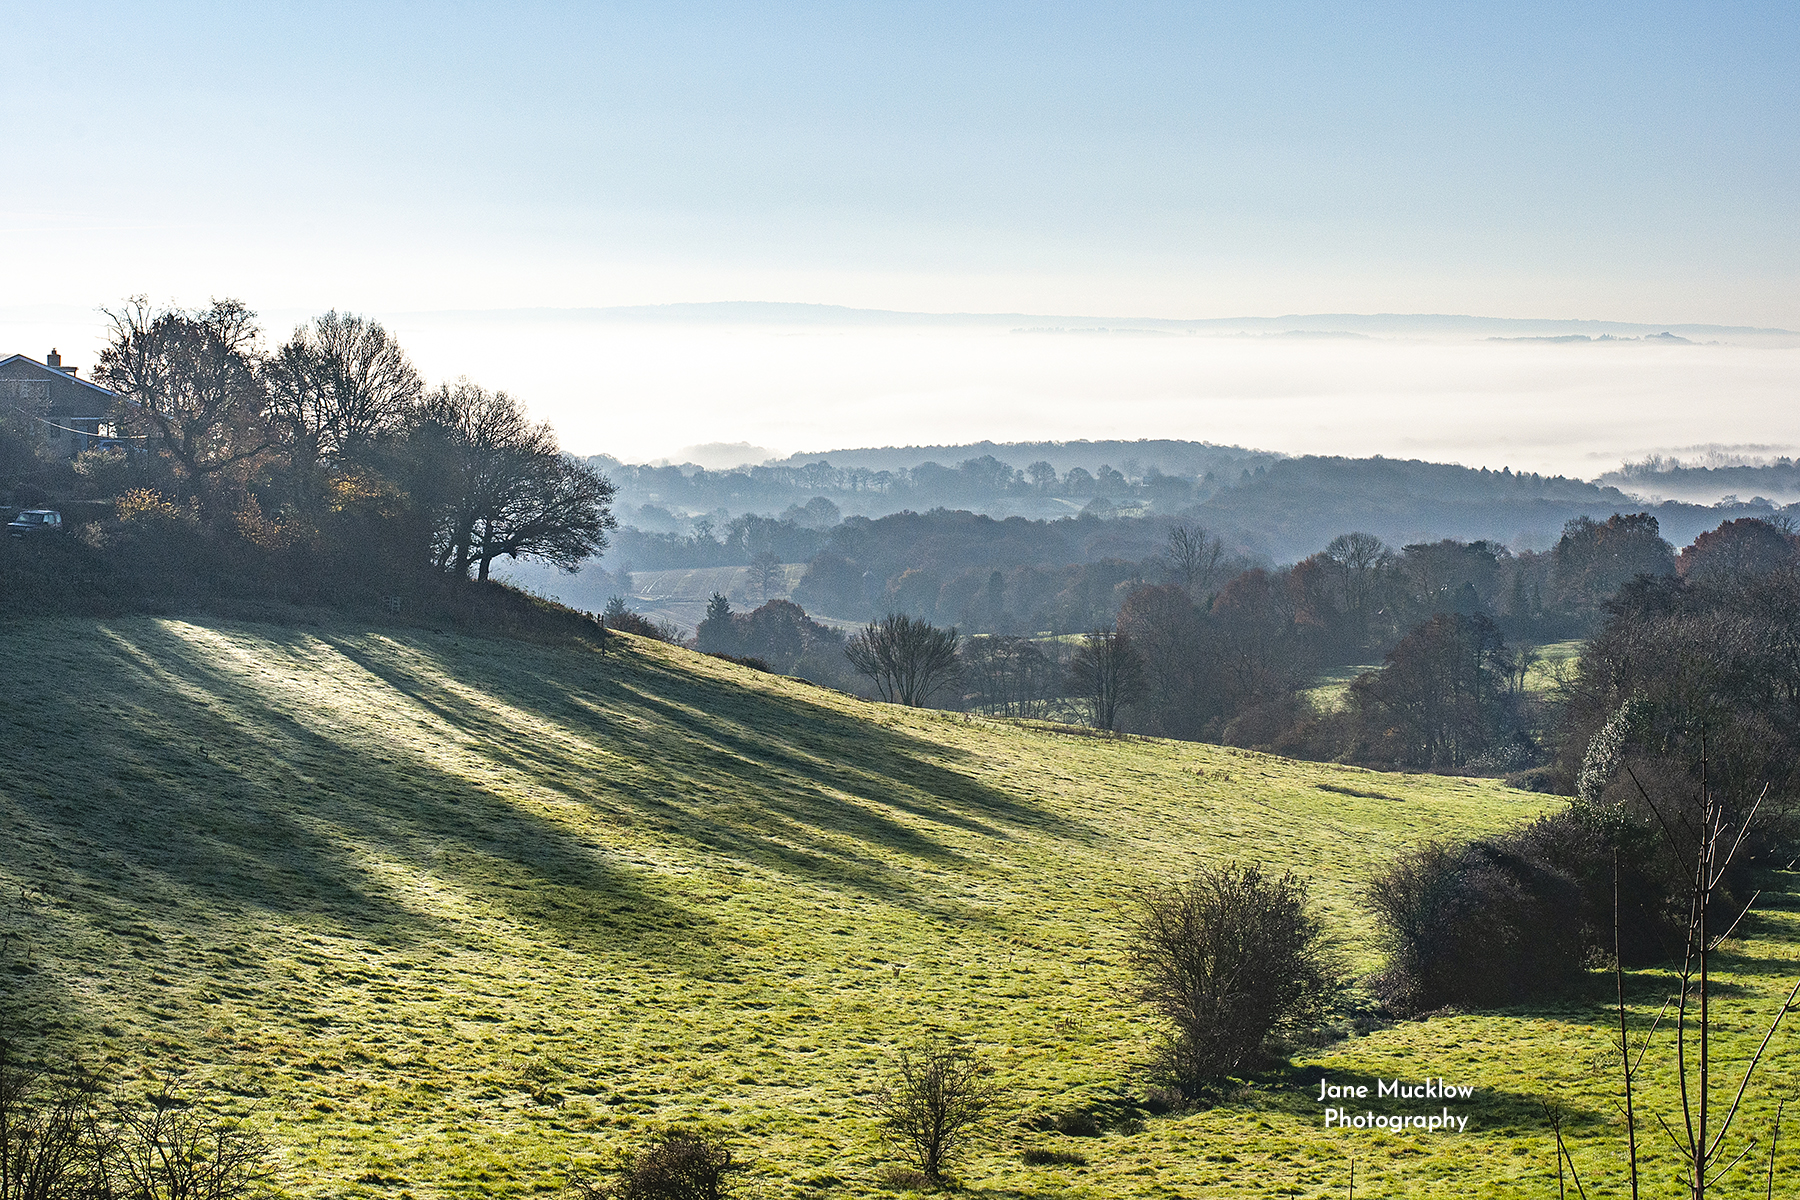 Photo of the misty sunrise view from Ide Hill towards Bough Beech and Tunbridge Wells, by Jane Mucklow